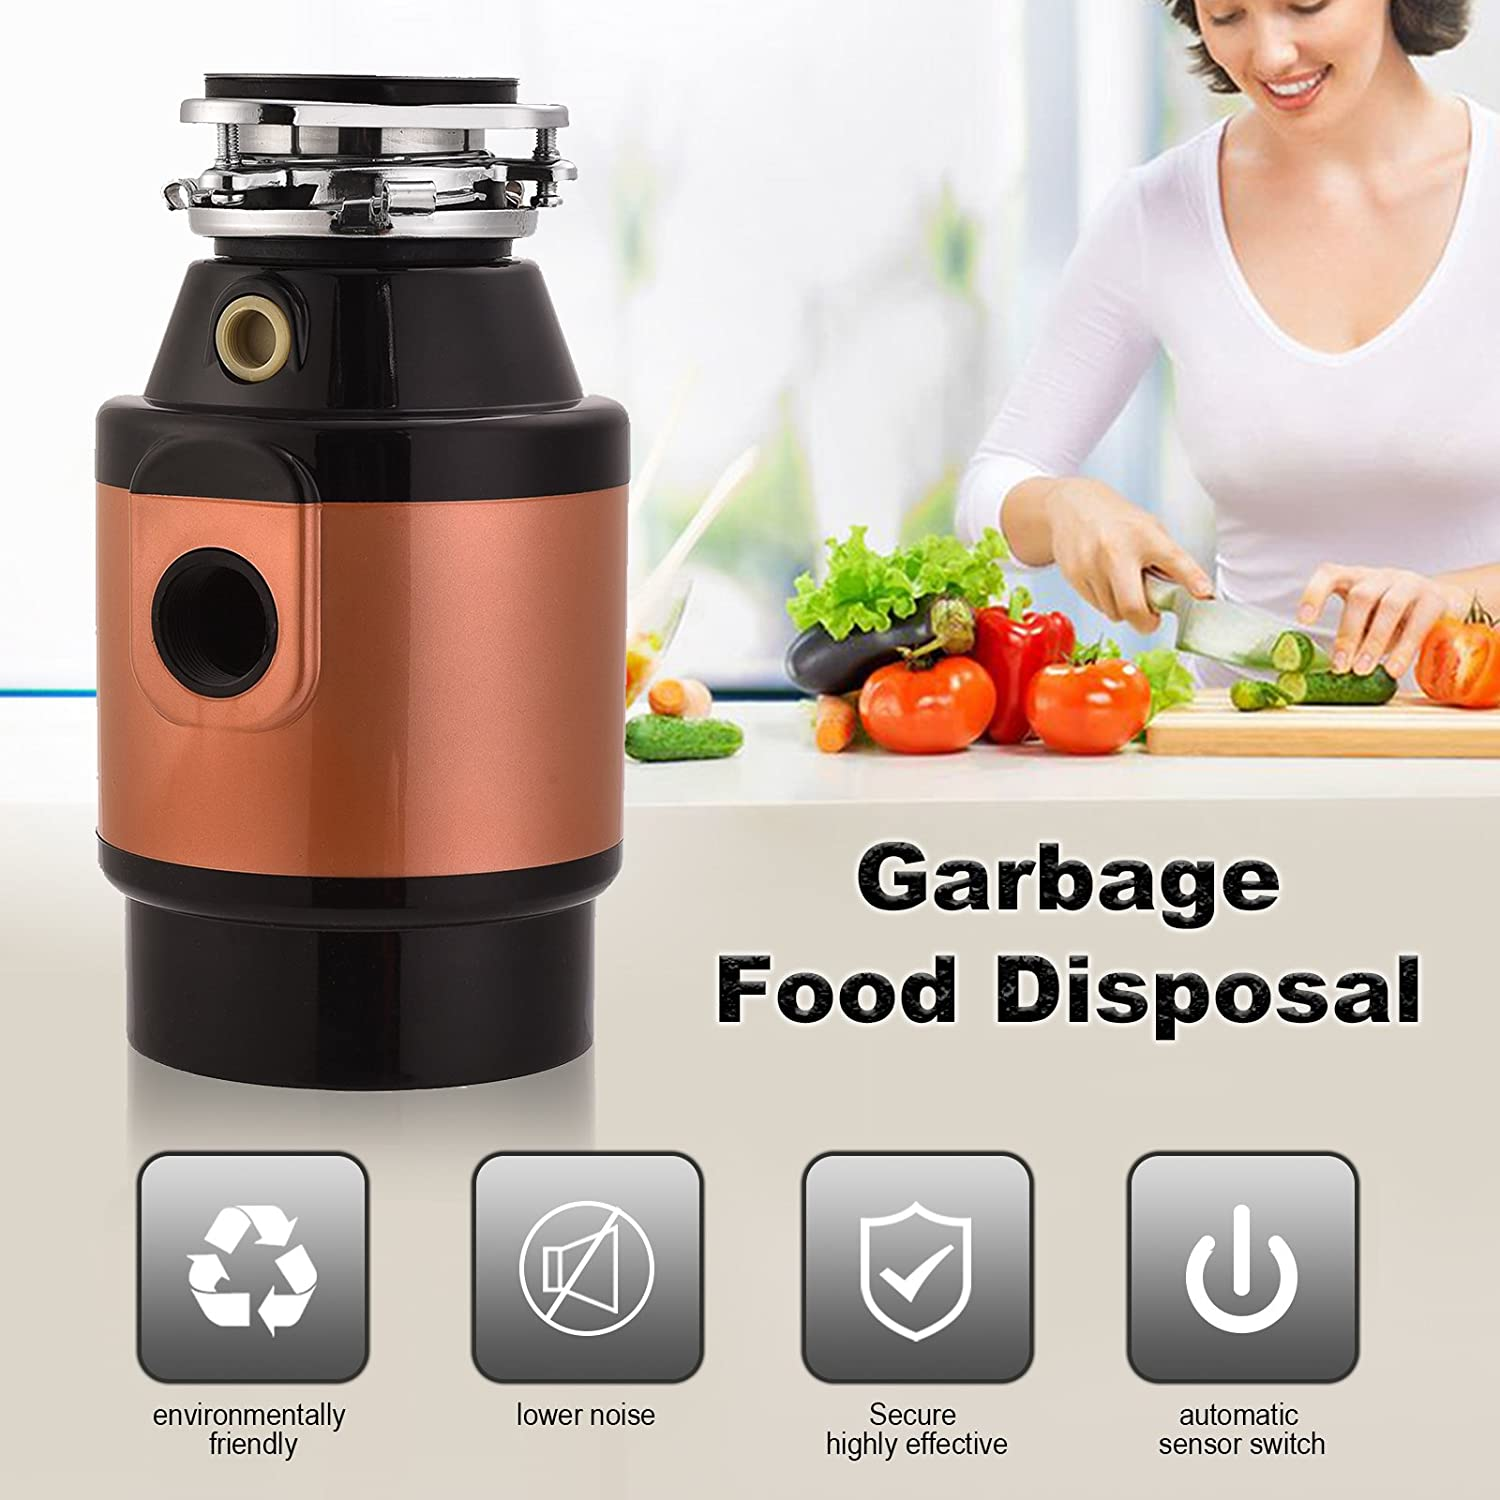 Suncoo 15 Hp Garbage Disposal Continuous Feed For Home Decorator Switch Kitchen Waste W Plug 3600rmp Champagneblack Improvement